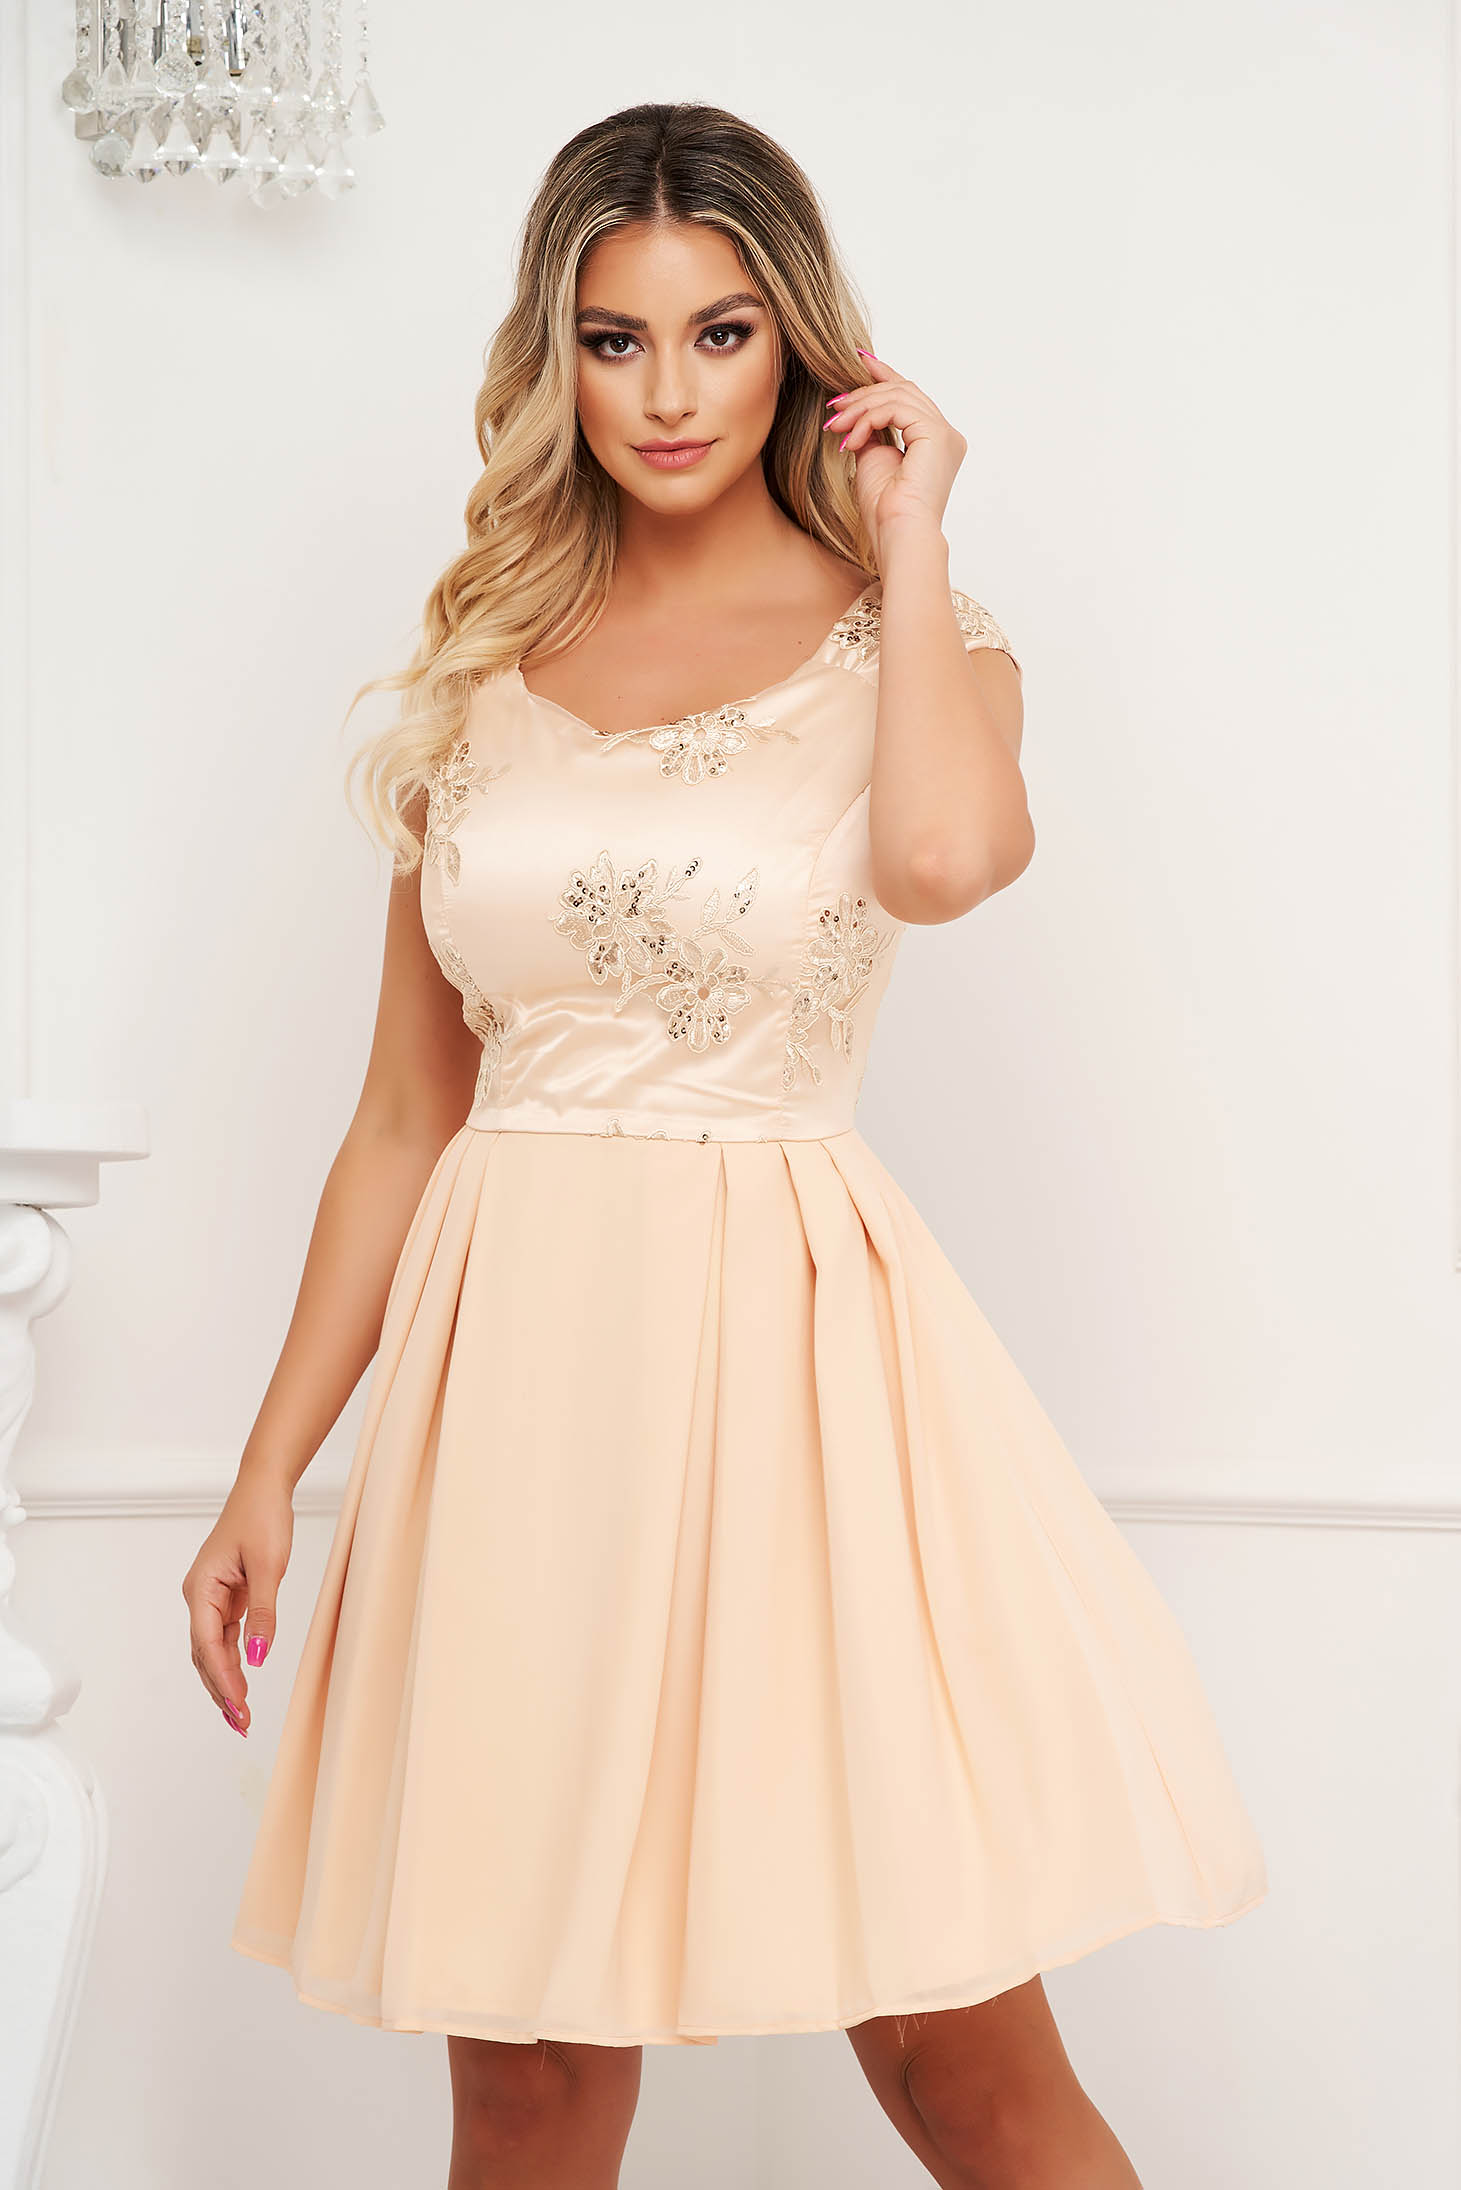 Cream dress cloche with lace details from satin fabric texture occasional short cut